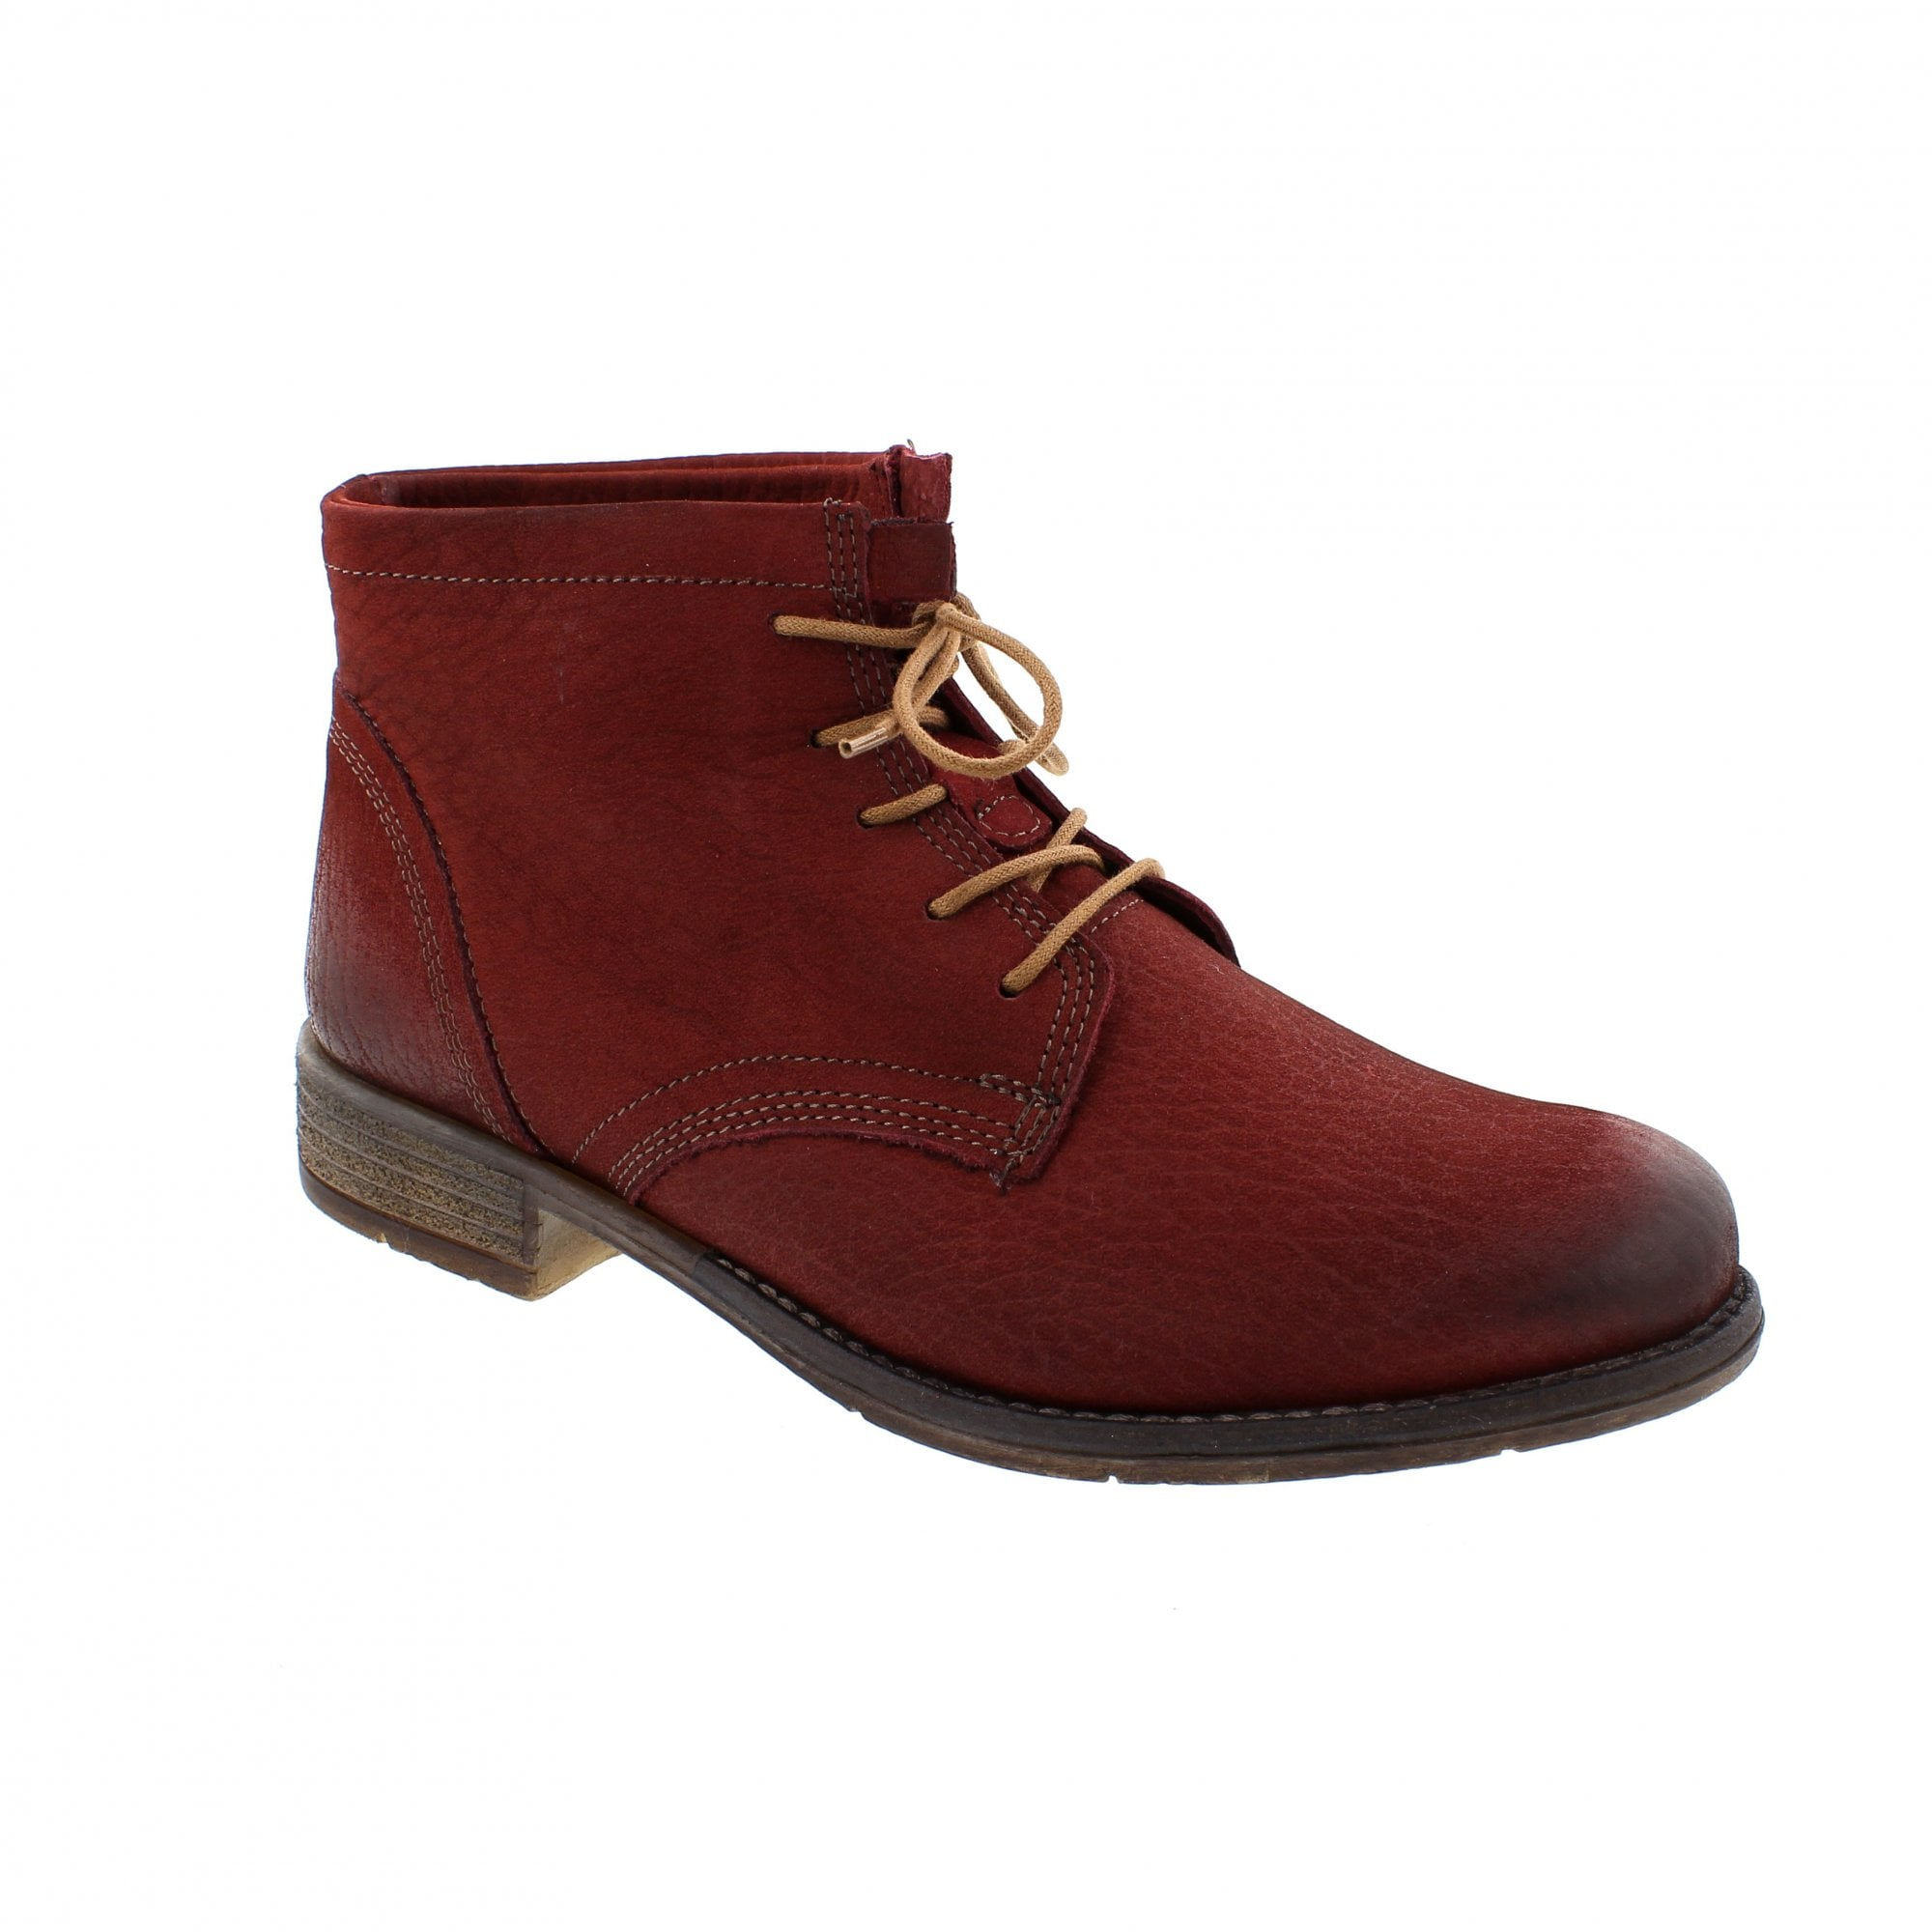 661a9a86d122e Josef Seibel Sienna 3 Red Womens Ankle Boots | Rogerson Shoes